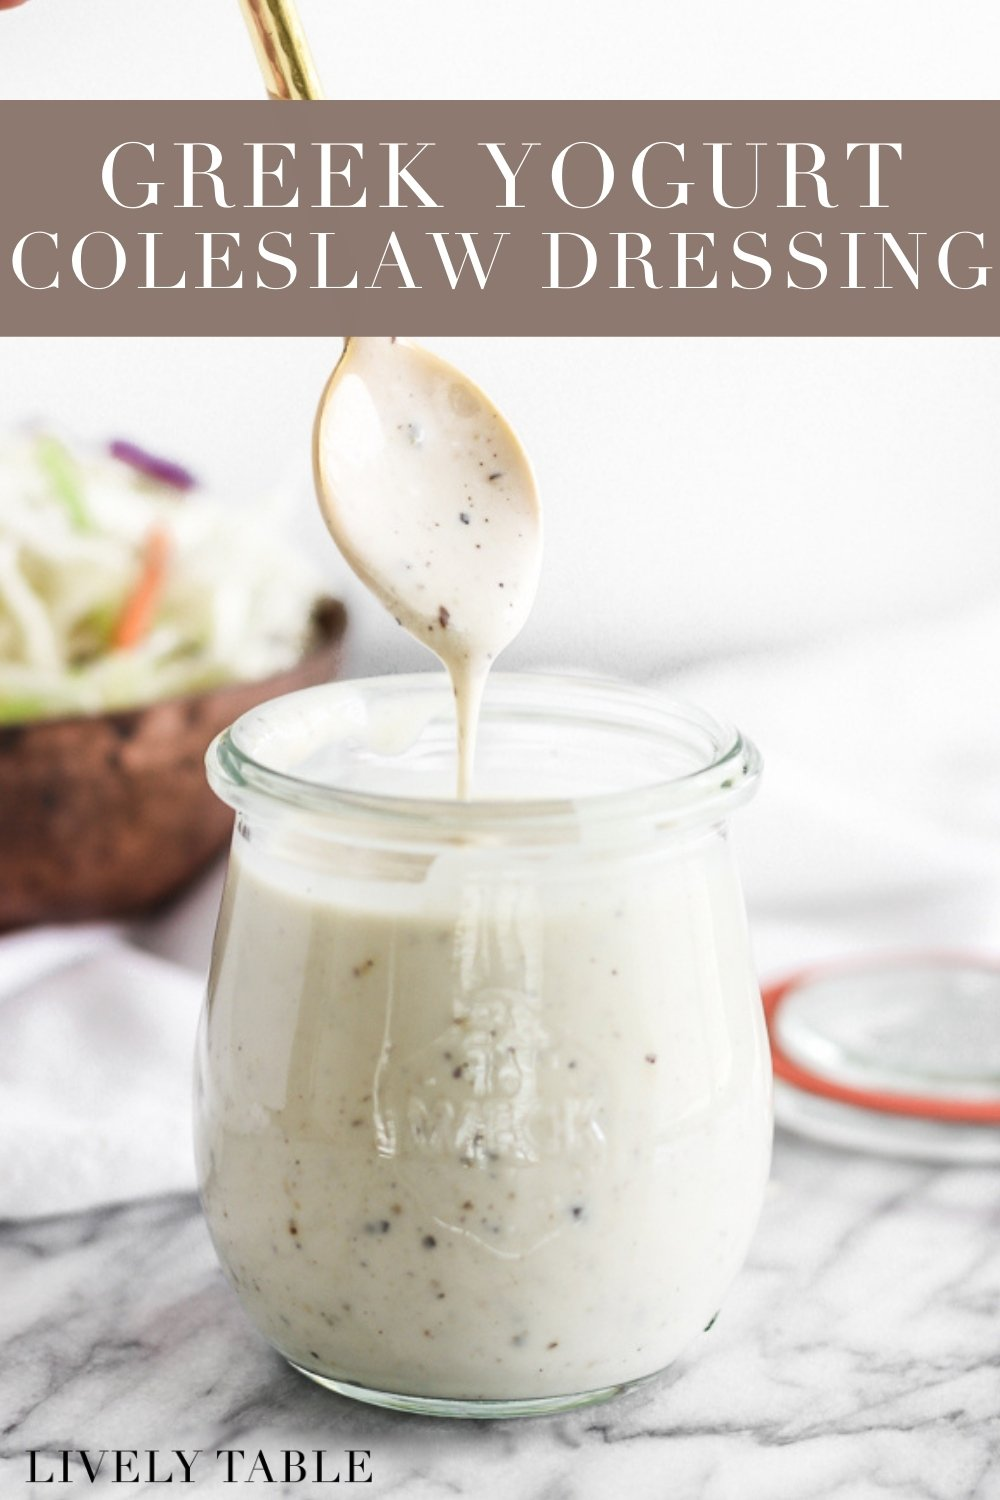 Creamy Greek Yogurt Coleslaw Dressing is incredibly easy to make with just a few pantry staples, and yields delicious, healthier coleslaw every time! #glutenfree #nutfree #greekyogurt #sauces #dressing #coldslaw #easy #under10minutes